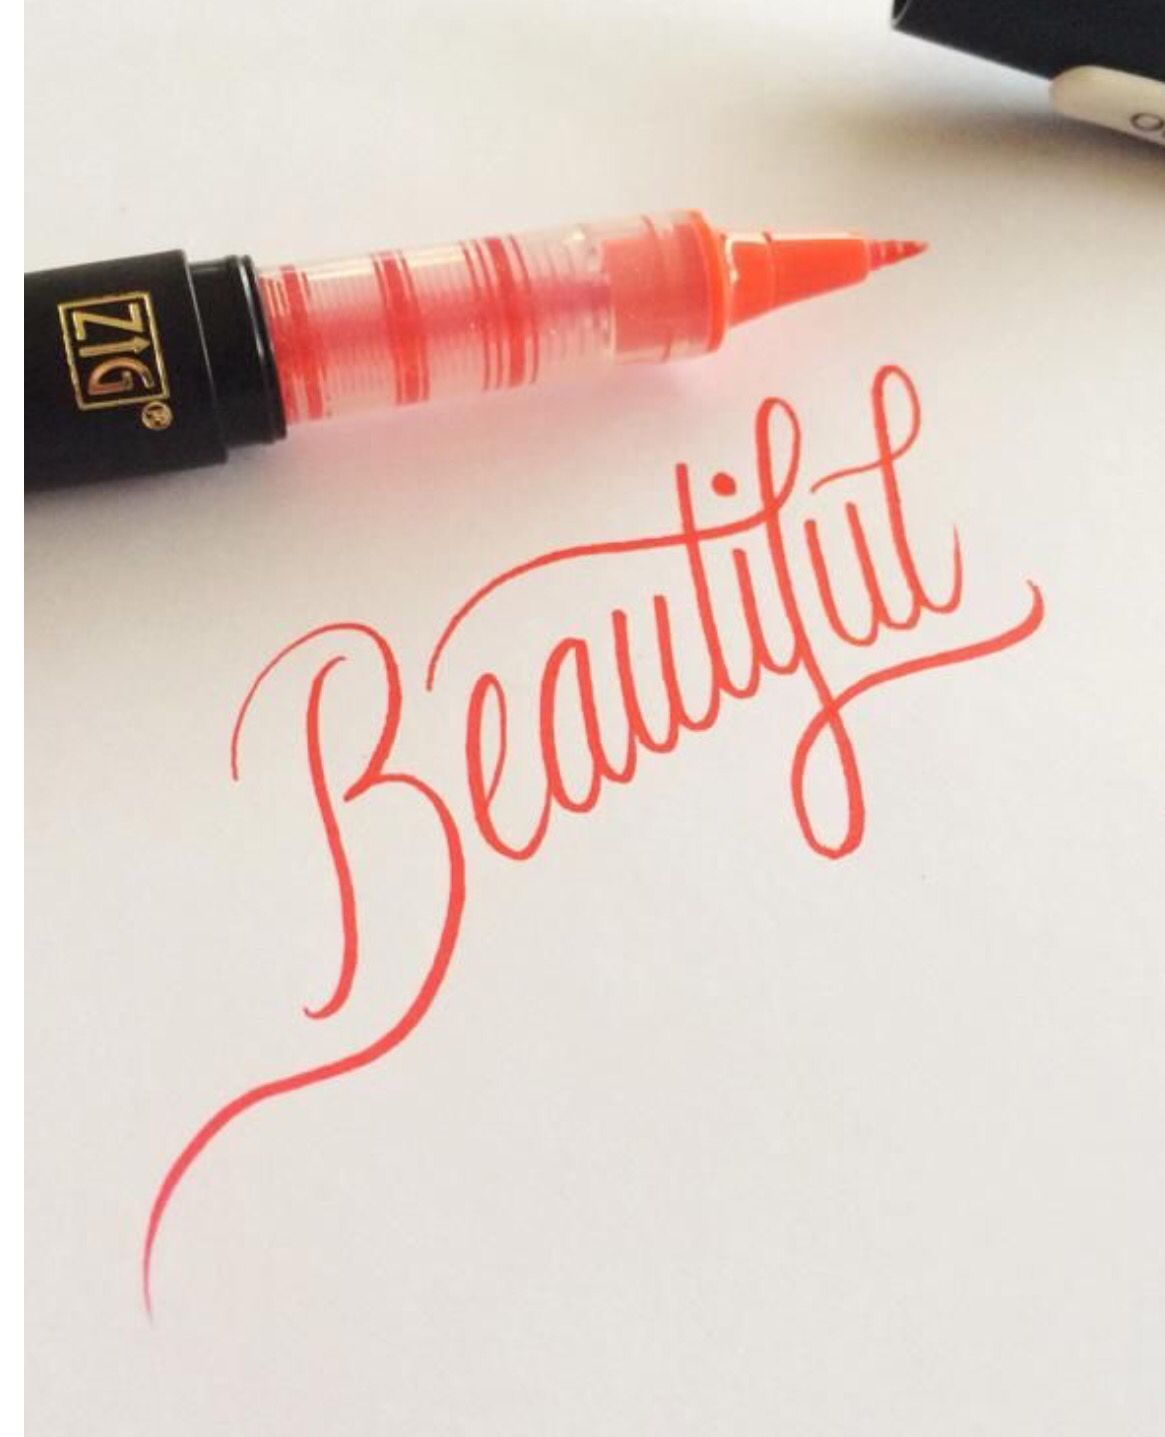 Calligraphy Tattoo Pinterest Pin By Eva On Calligraphy Pinterest Calligraphy Lettering And